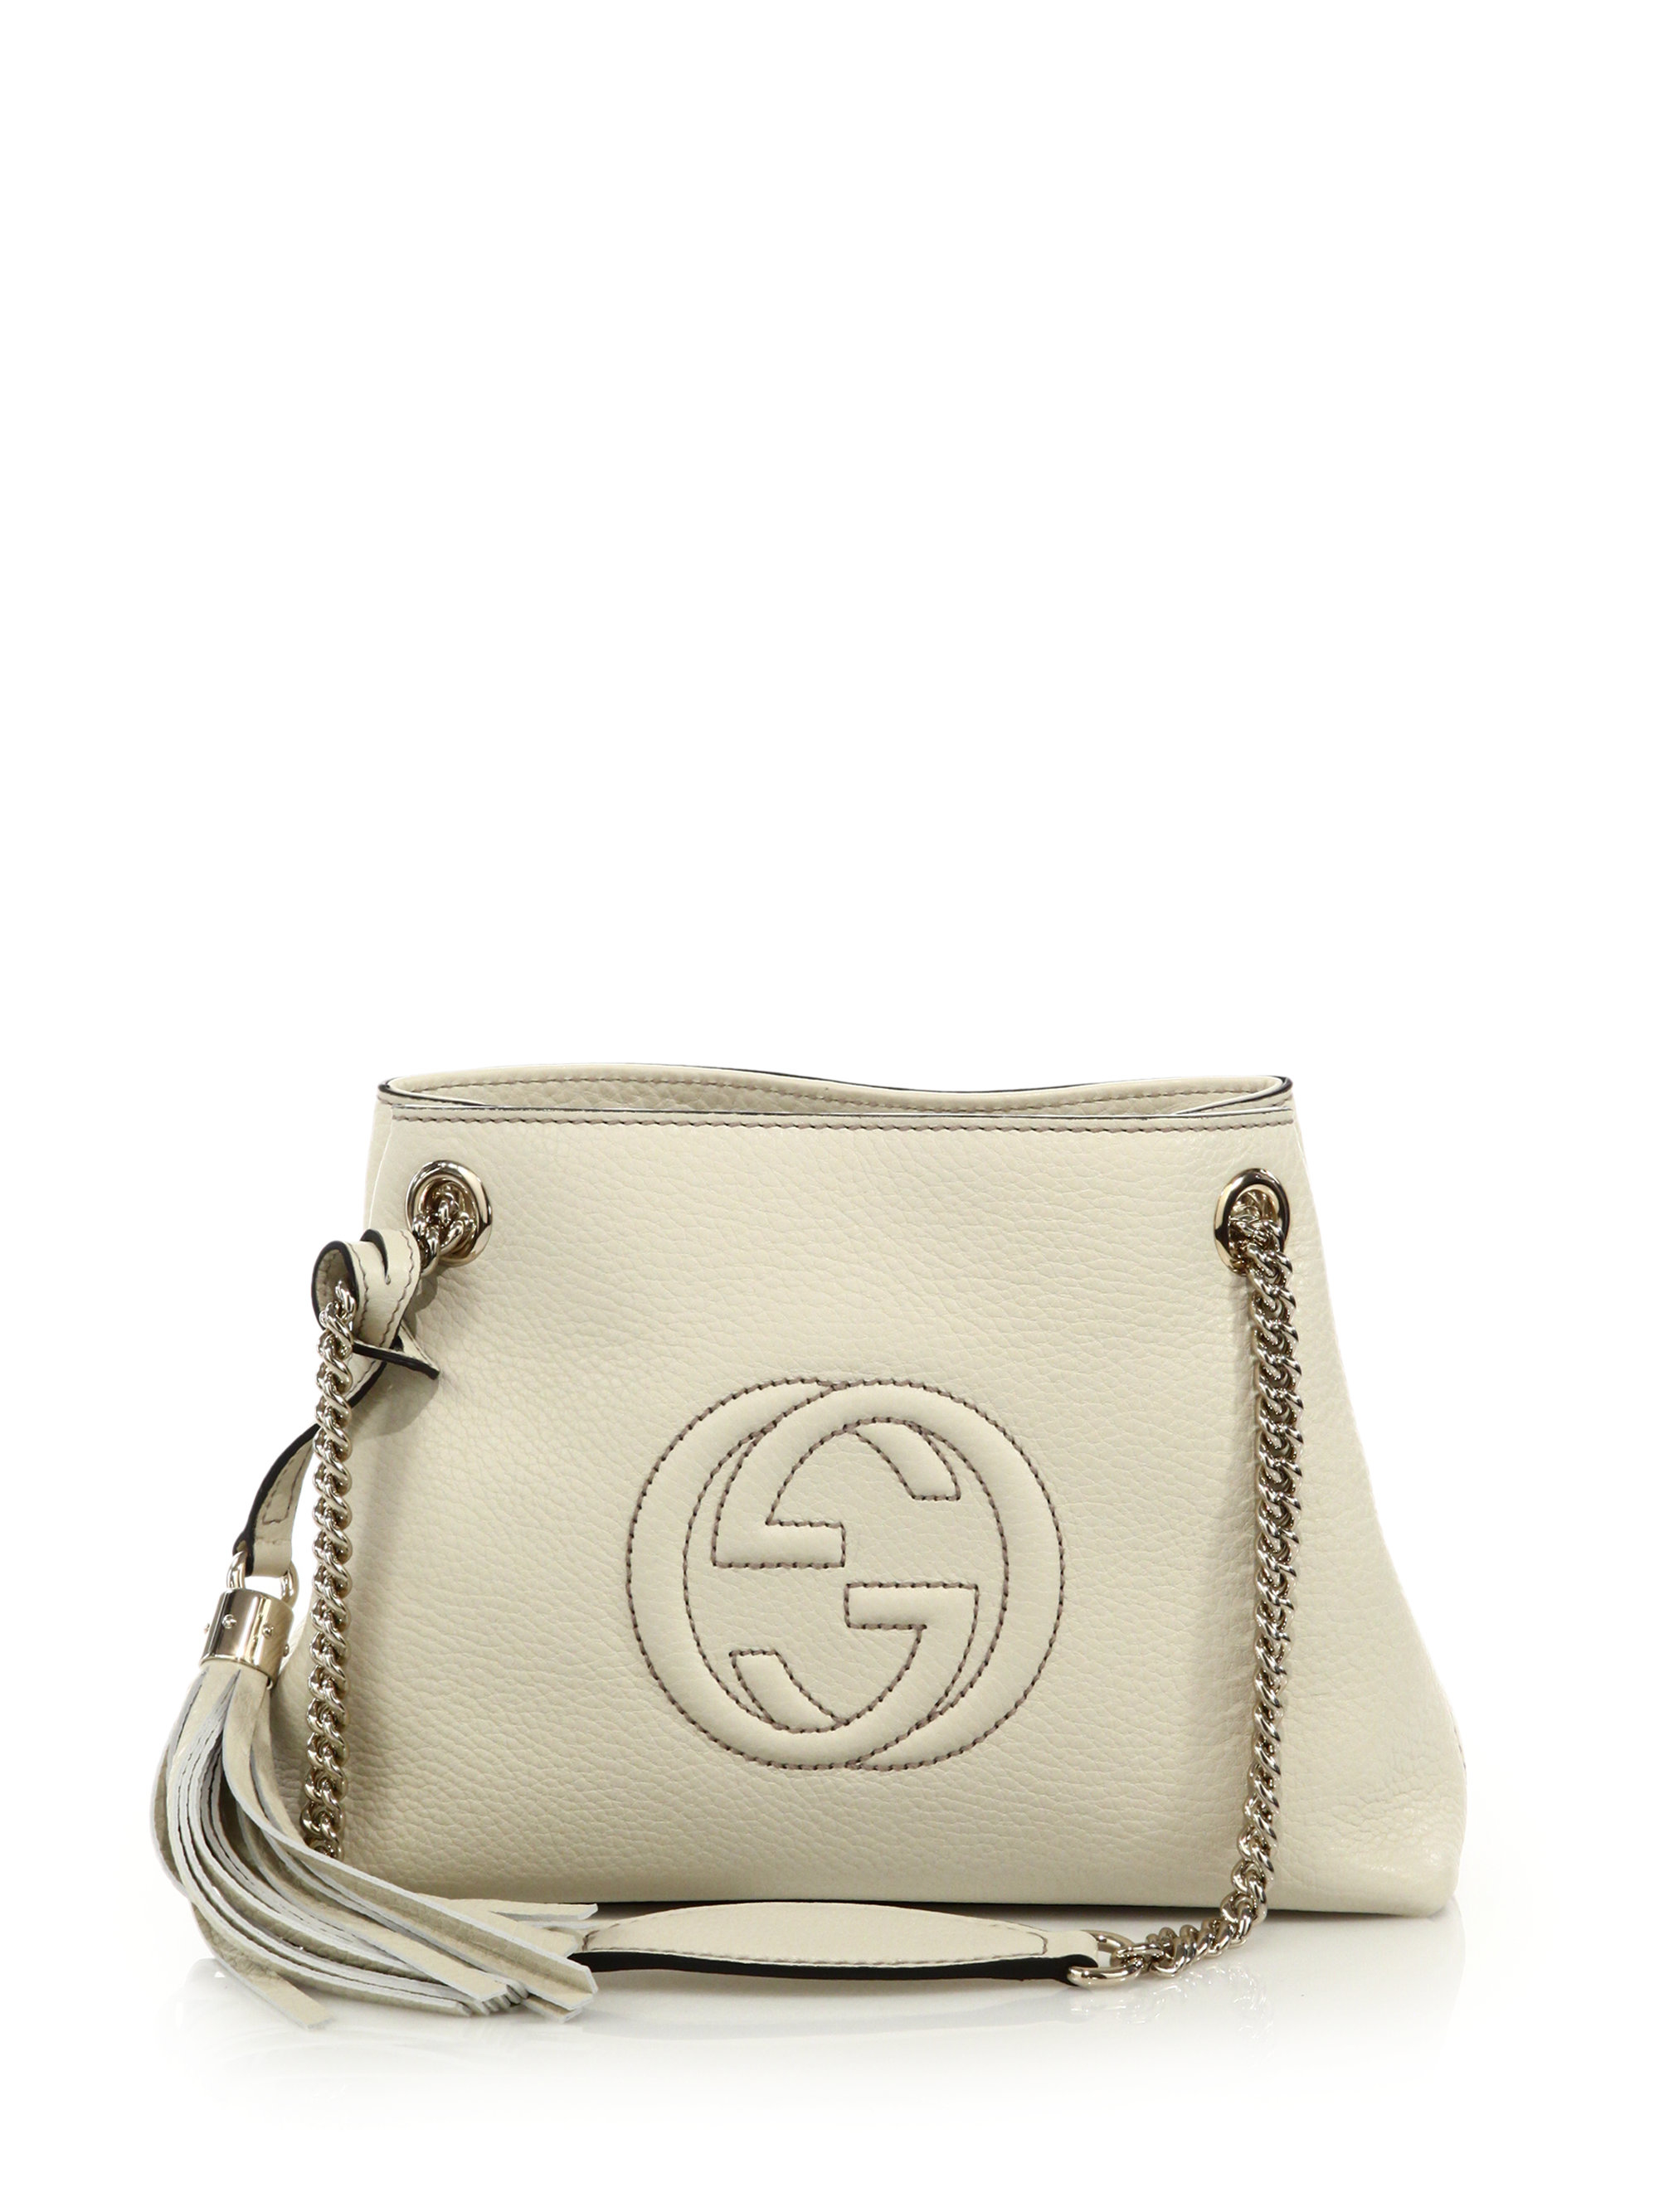 Gucci Soho Small Leather Shoulder Bag in White | Lyst